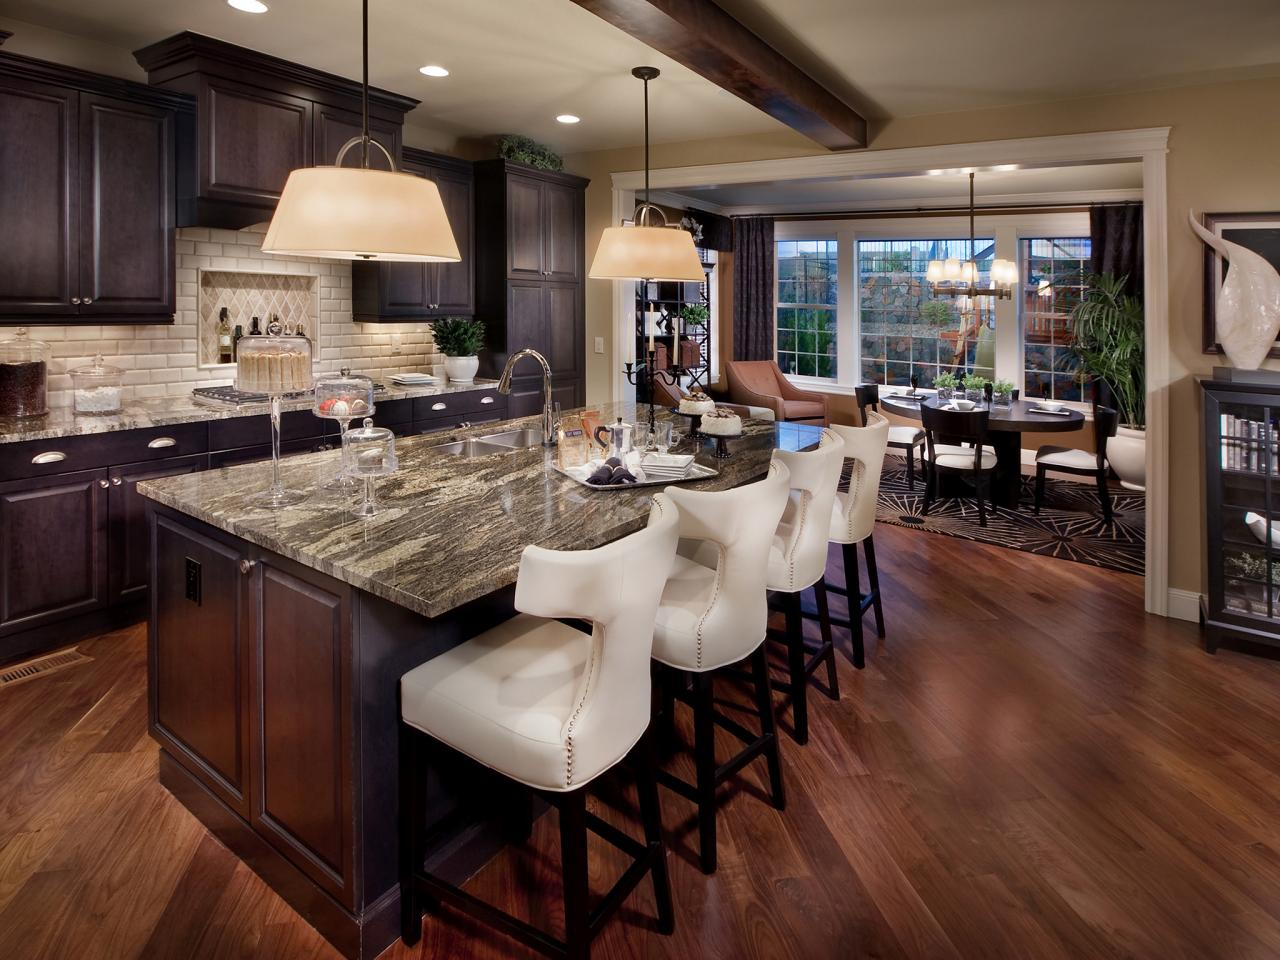 Black kitchen islands kitchen designs choose kitchen Best kitchen remodels